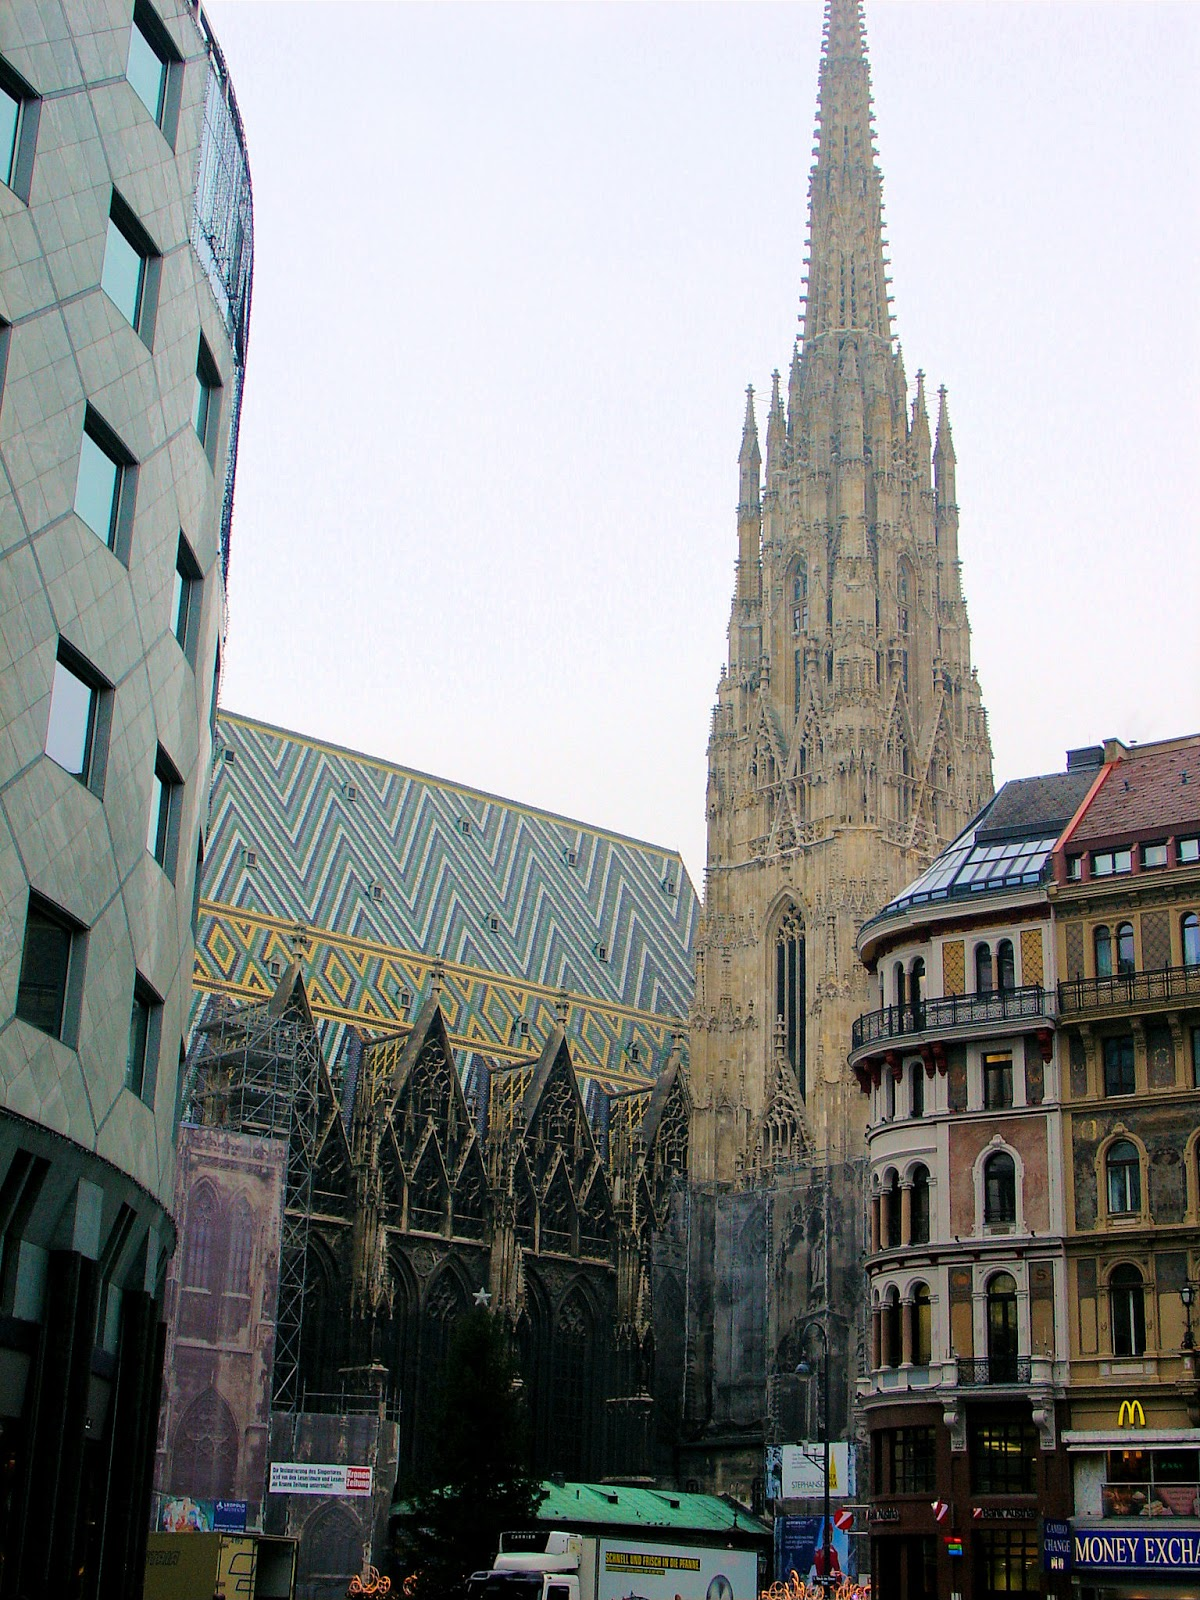 The Haas Haus at the left has become a controversy in the city of Vienna due to its modern architectural style juxtaposed with Saint Stephan's in the background. Look deeper, and more contrast in the geometric patterns on the roof.